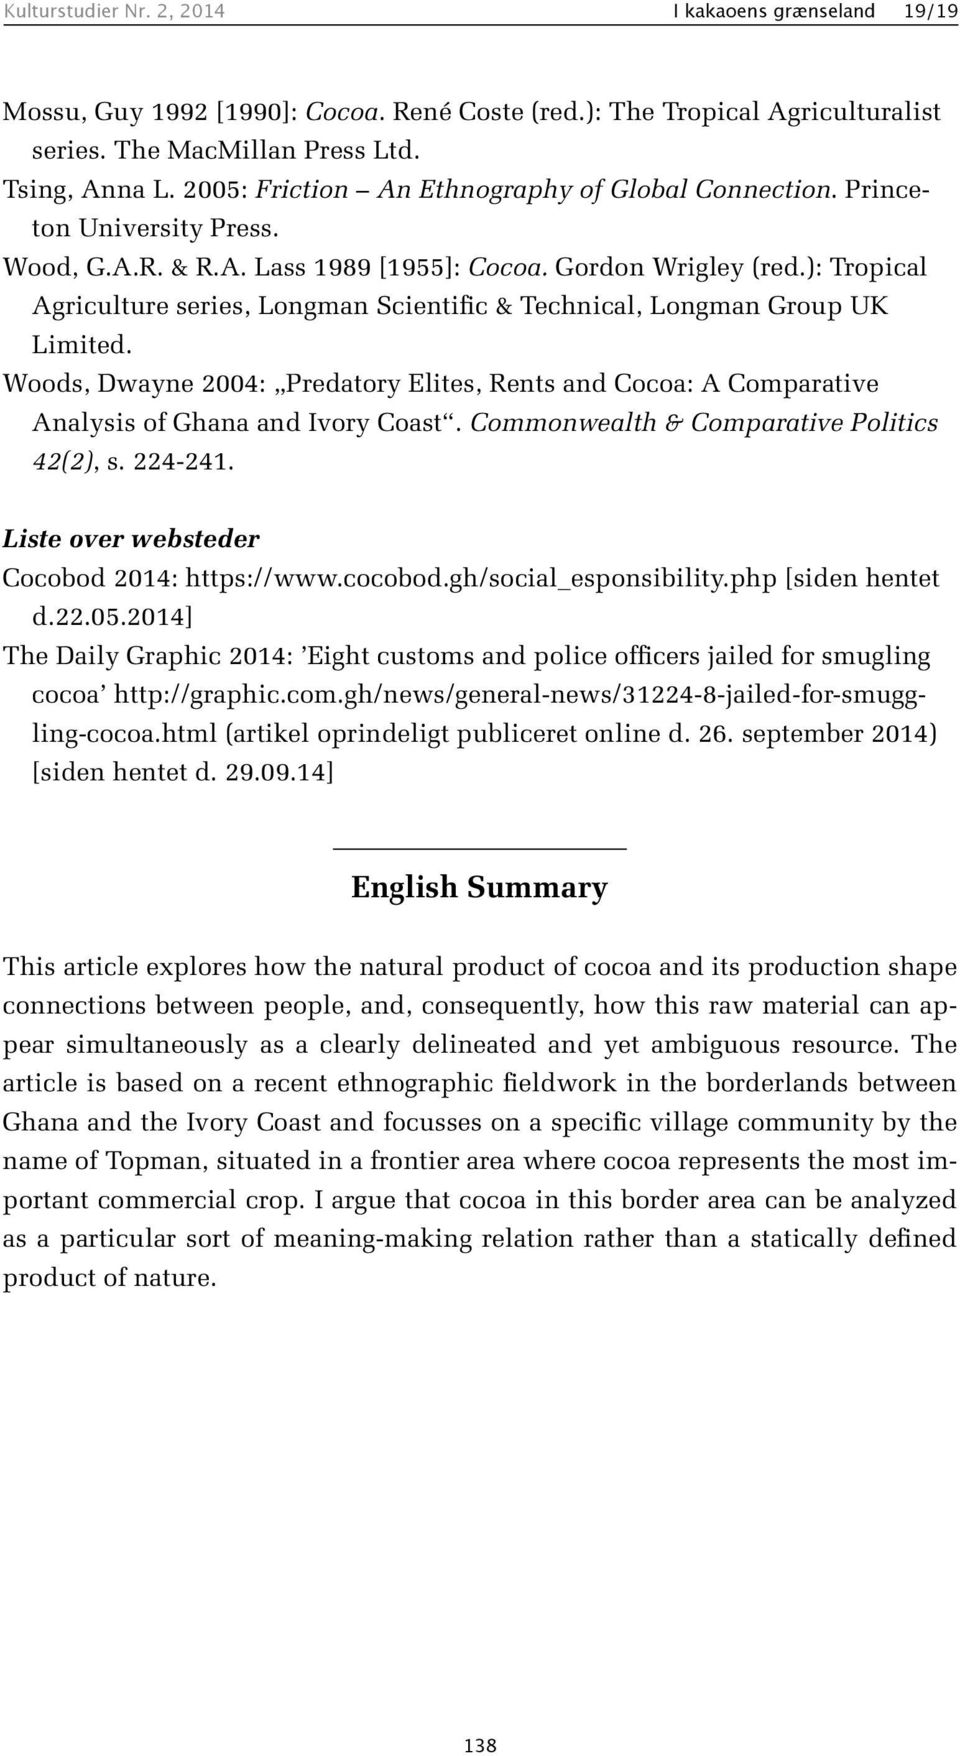 ): Tropical Agriculture series, Longman Scientific & Technical, Longman Group UK Limited. Woods, Dwayne 2004: Predatory Elites, Rents and Cocoa: A Comparative Analysis of Ghana and Ivory Coast.